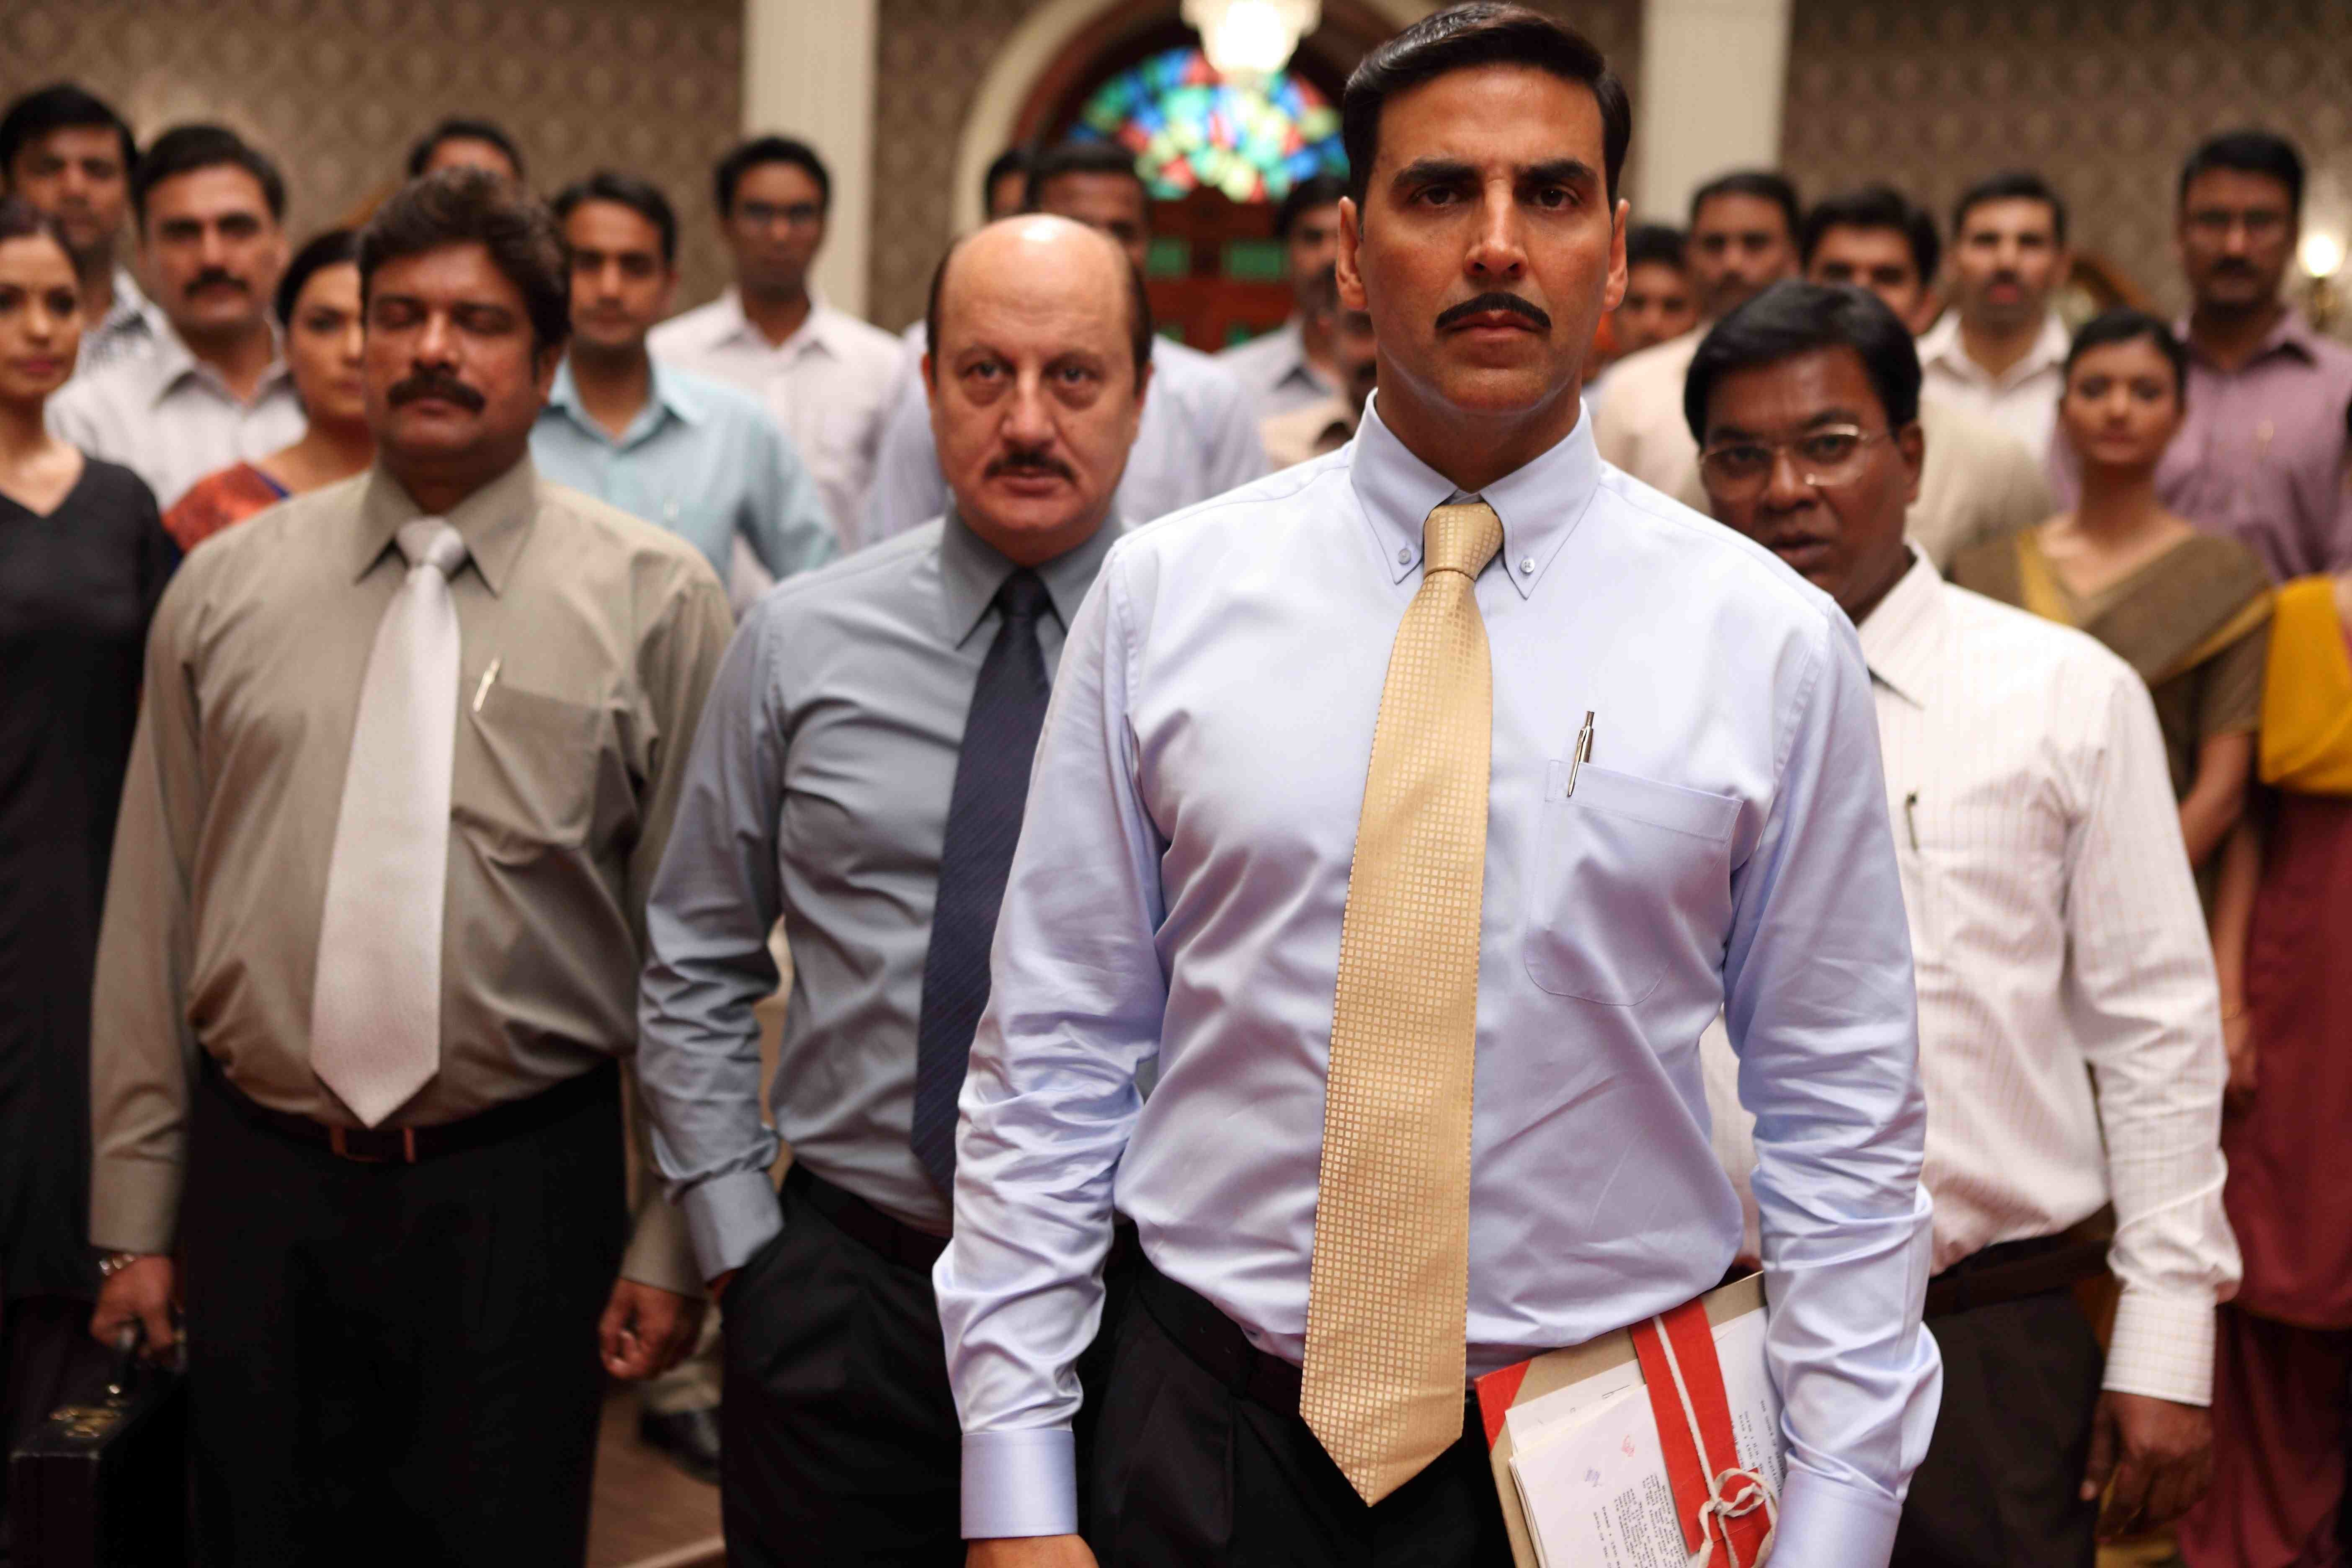 Special 26 4 Get Ready for the Heist Drama based on Real Events, Special 26 releasing on 8th February!